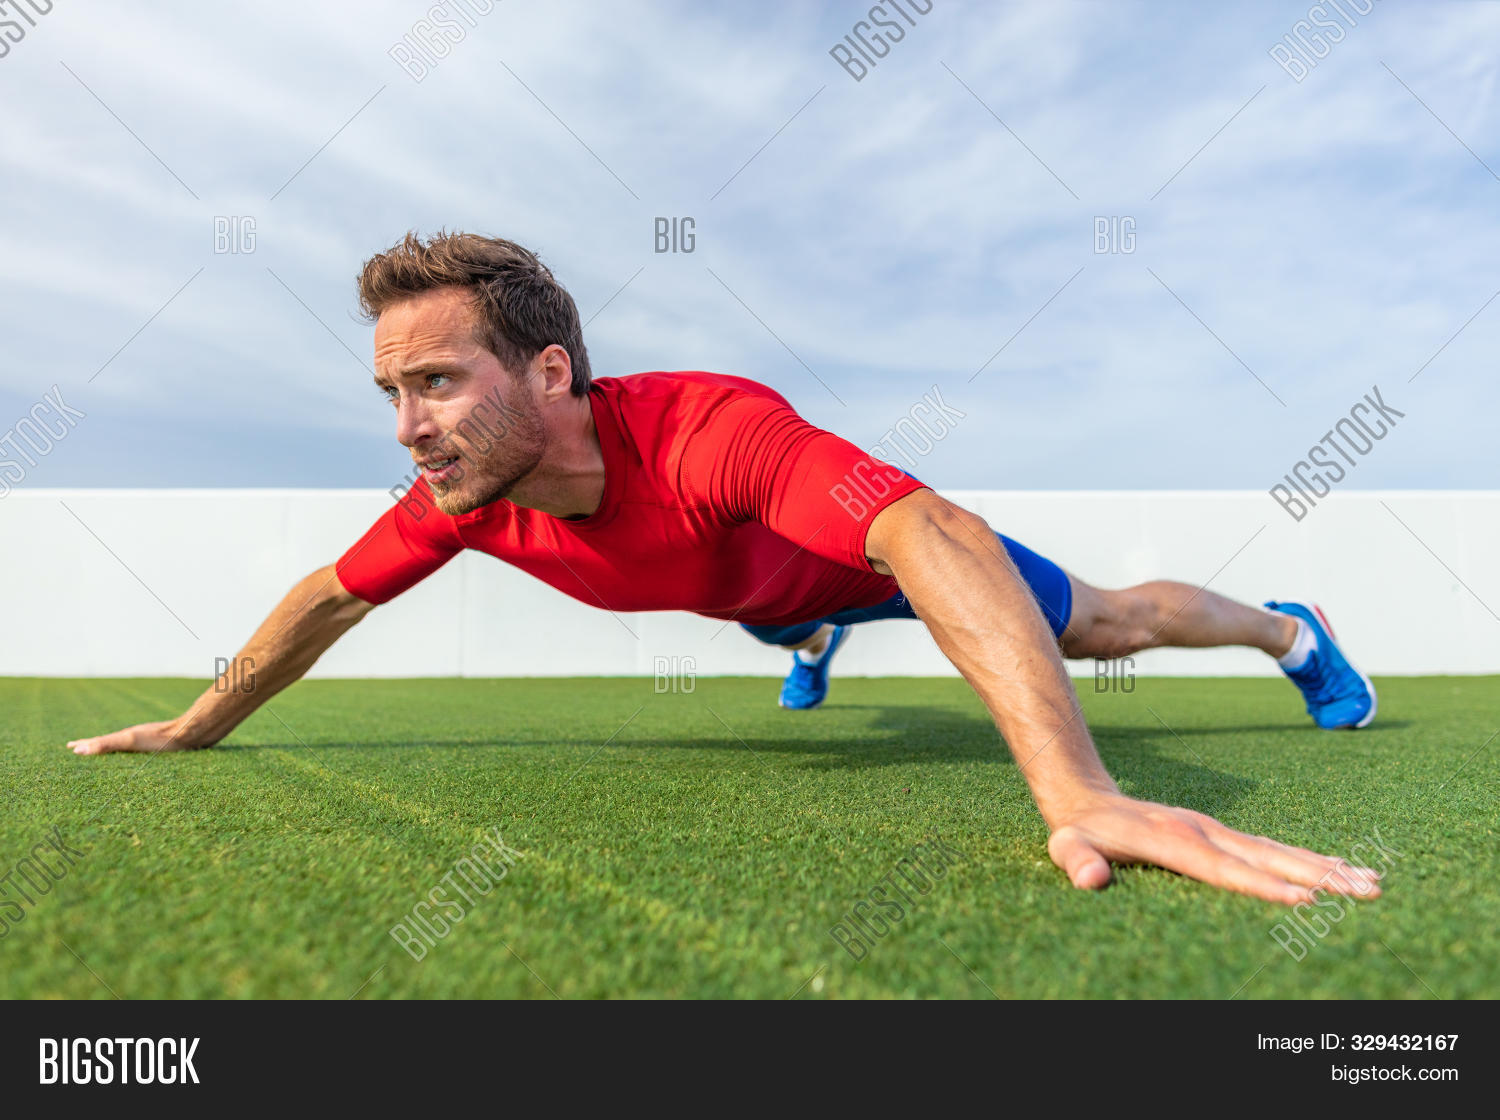 active,advanced,arms,biceps,body,bodyweight,calisthenic,caucasian,chest,core,demonstration,exercise,fit,fitness,floor,grass,grip,gym,healthy,home,lifestyle,male,man,men,muscles,outdoor,outdoors,outside,park,people,person,plank,planking,plyometrics,push,push-ups,pushup,pushups,shoulder,shoulders,sport,strength,summer,training,up,ups,variation,wide,working out,workout